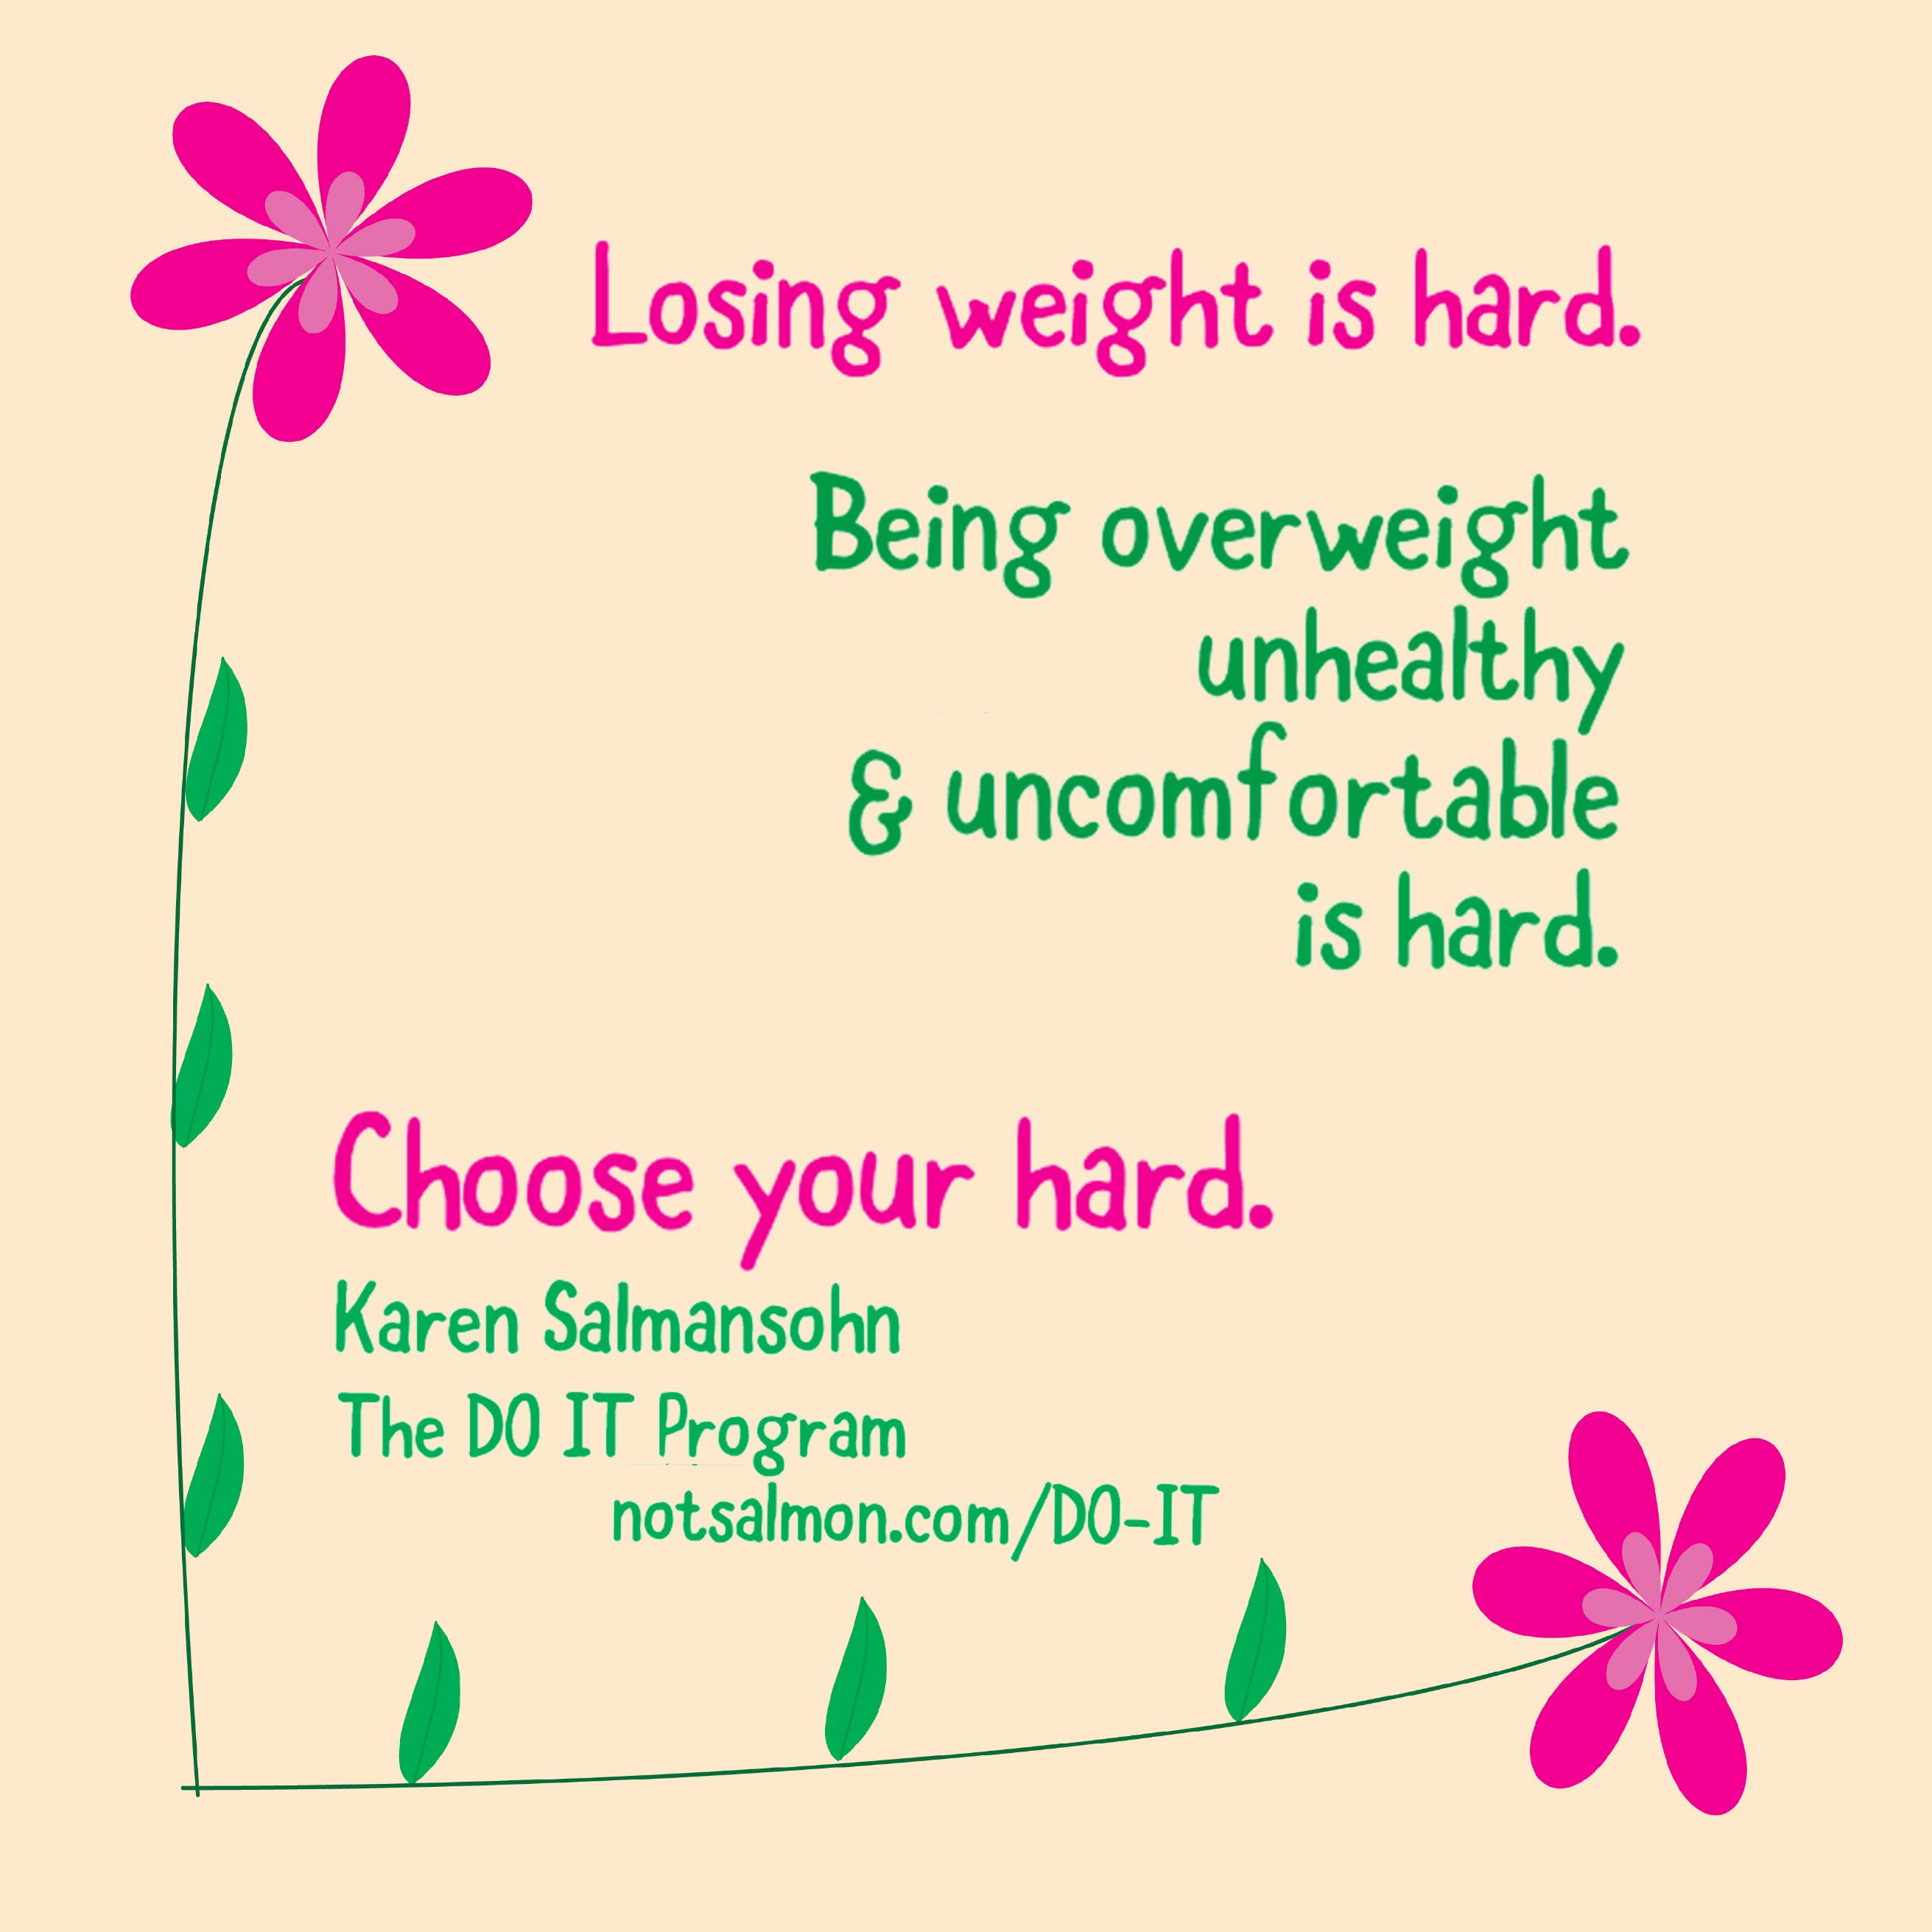 what are the power foods for weight loss